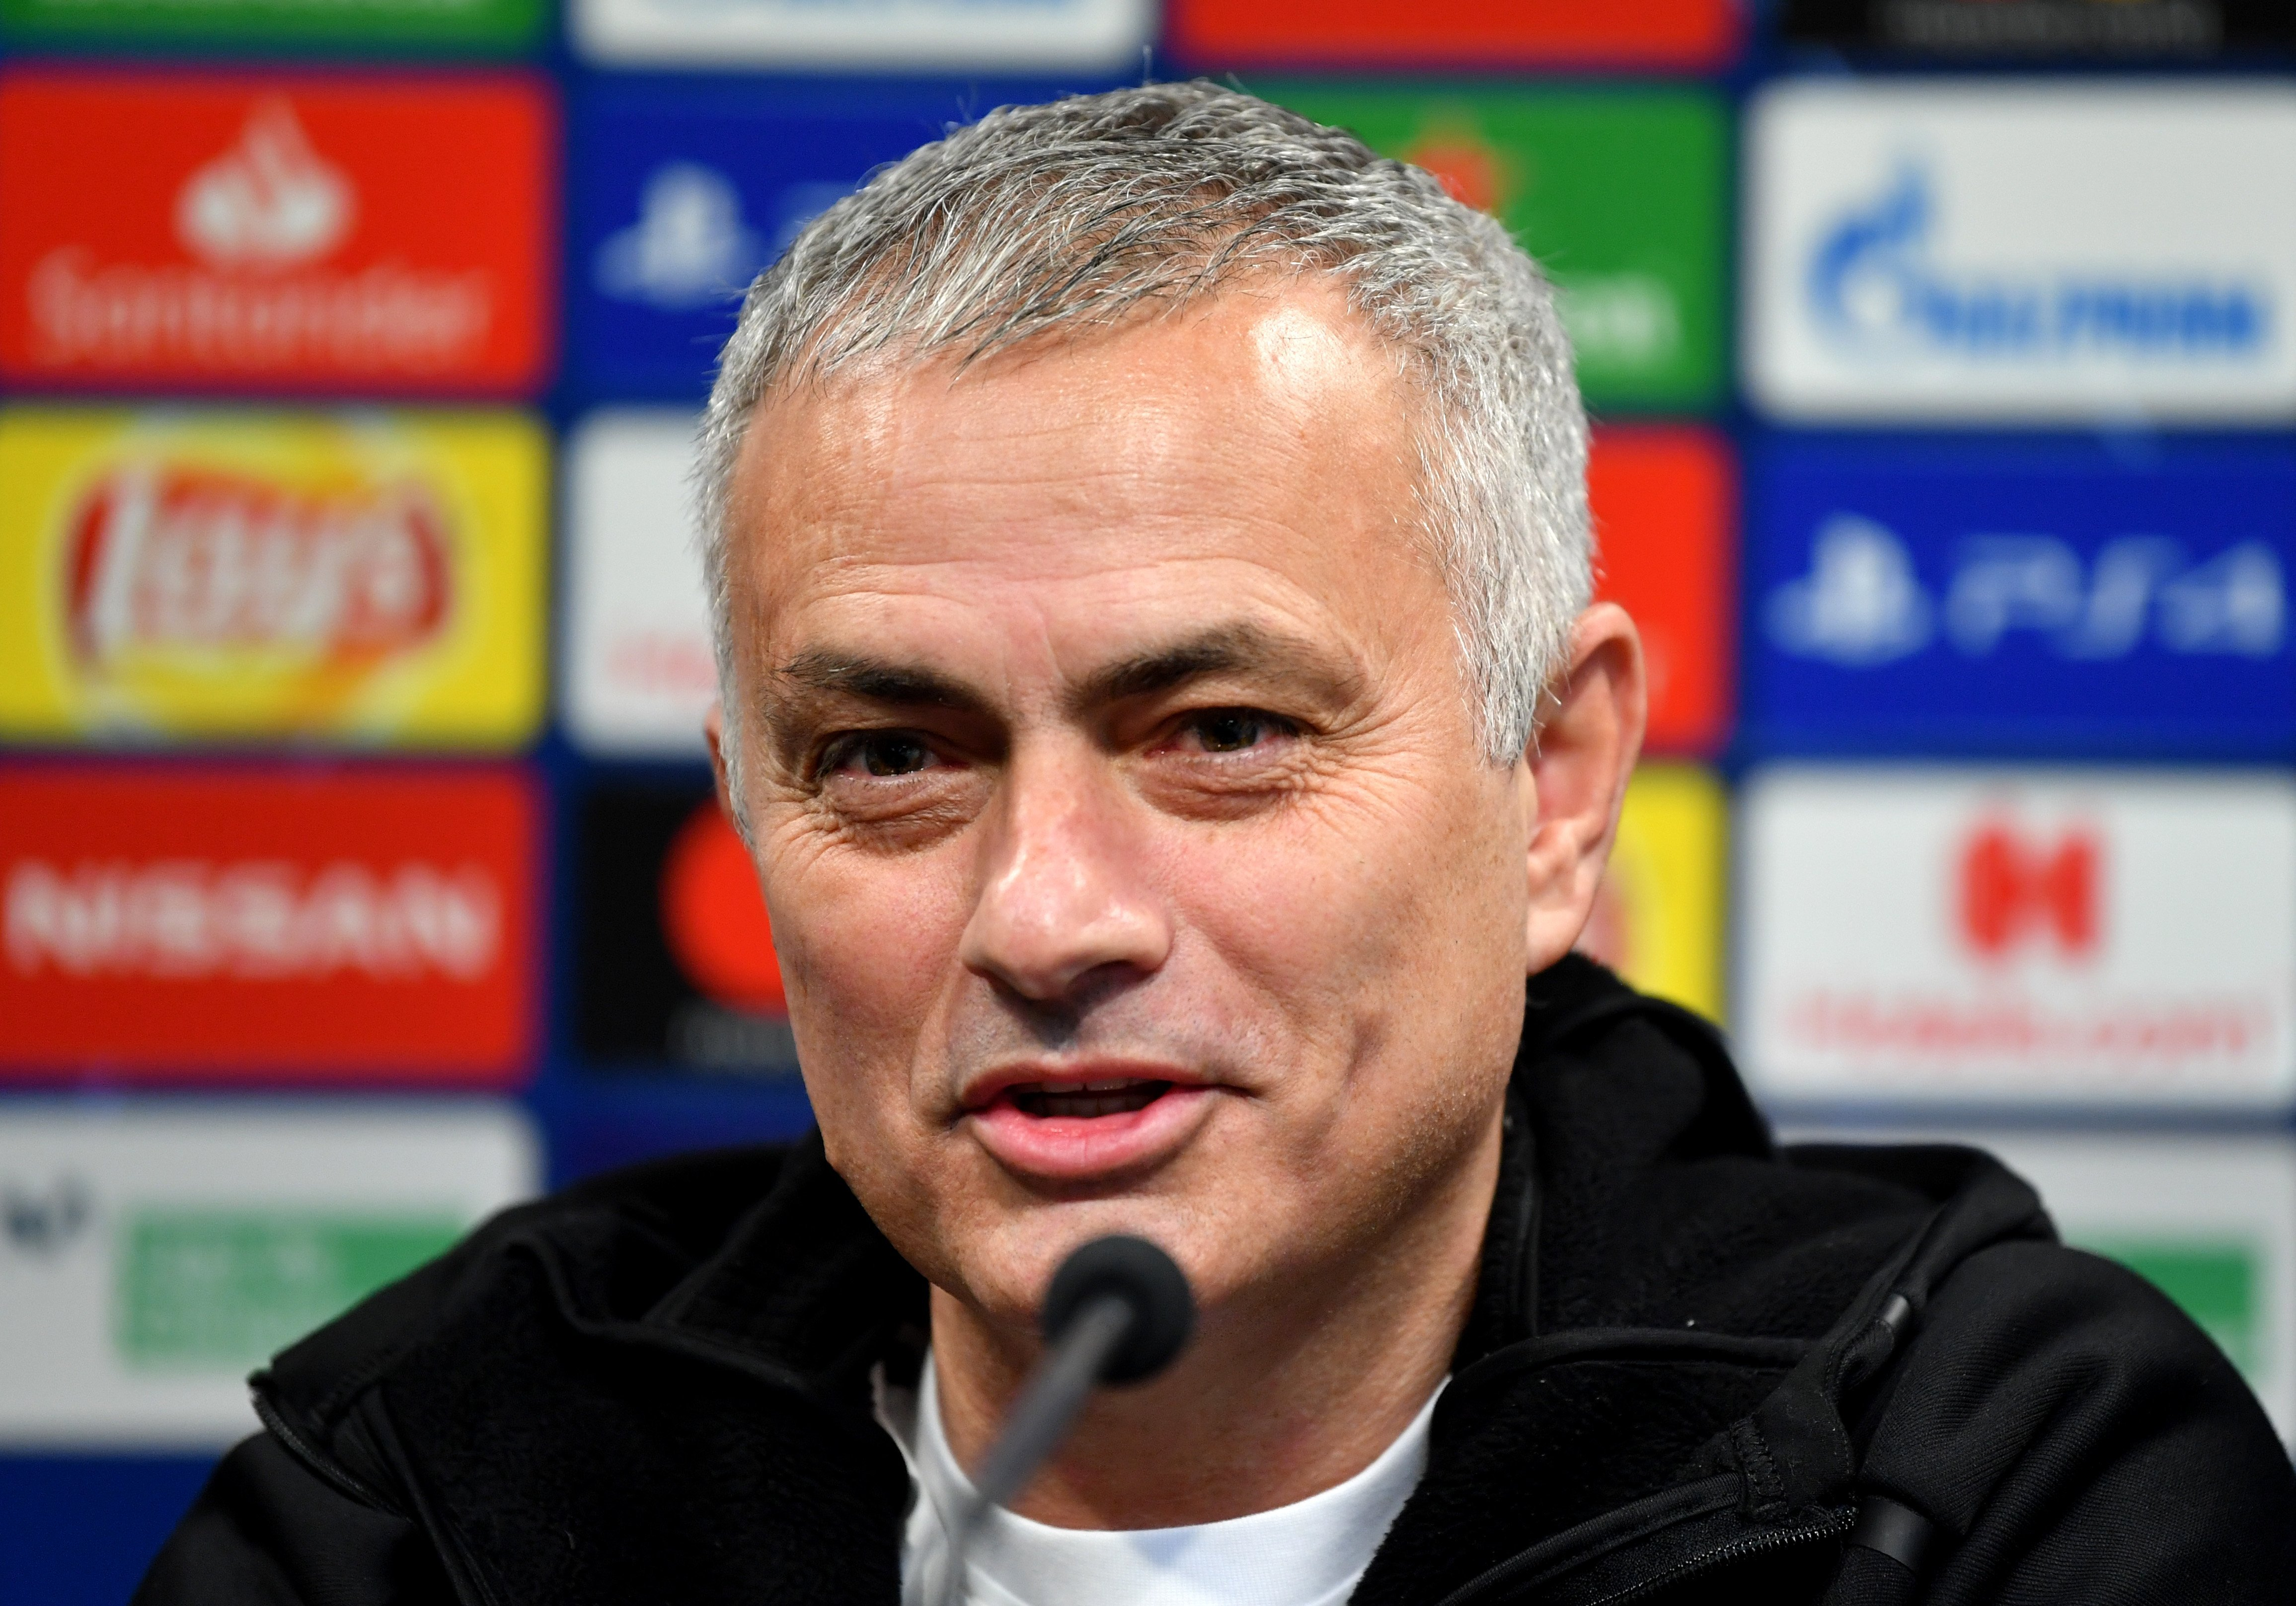 Jose Mourinho: Tottenham Hotspur announce new head coach